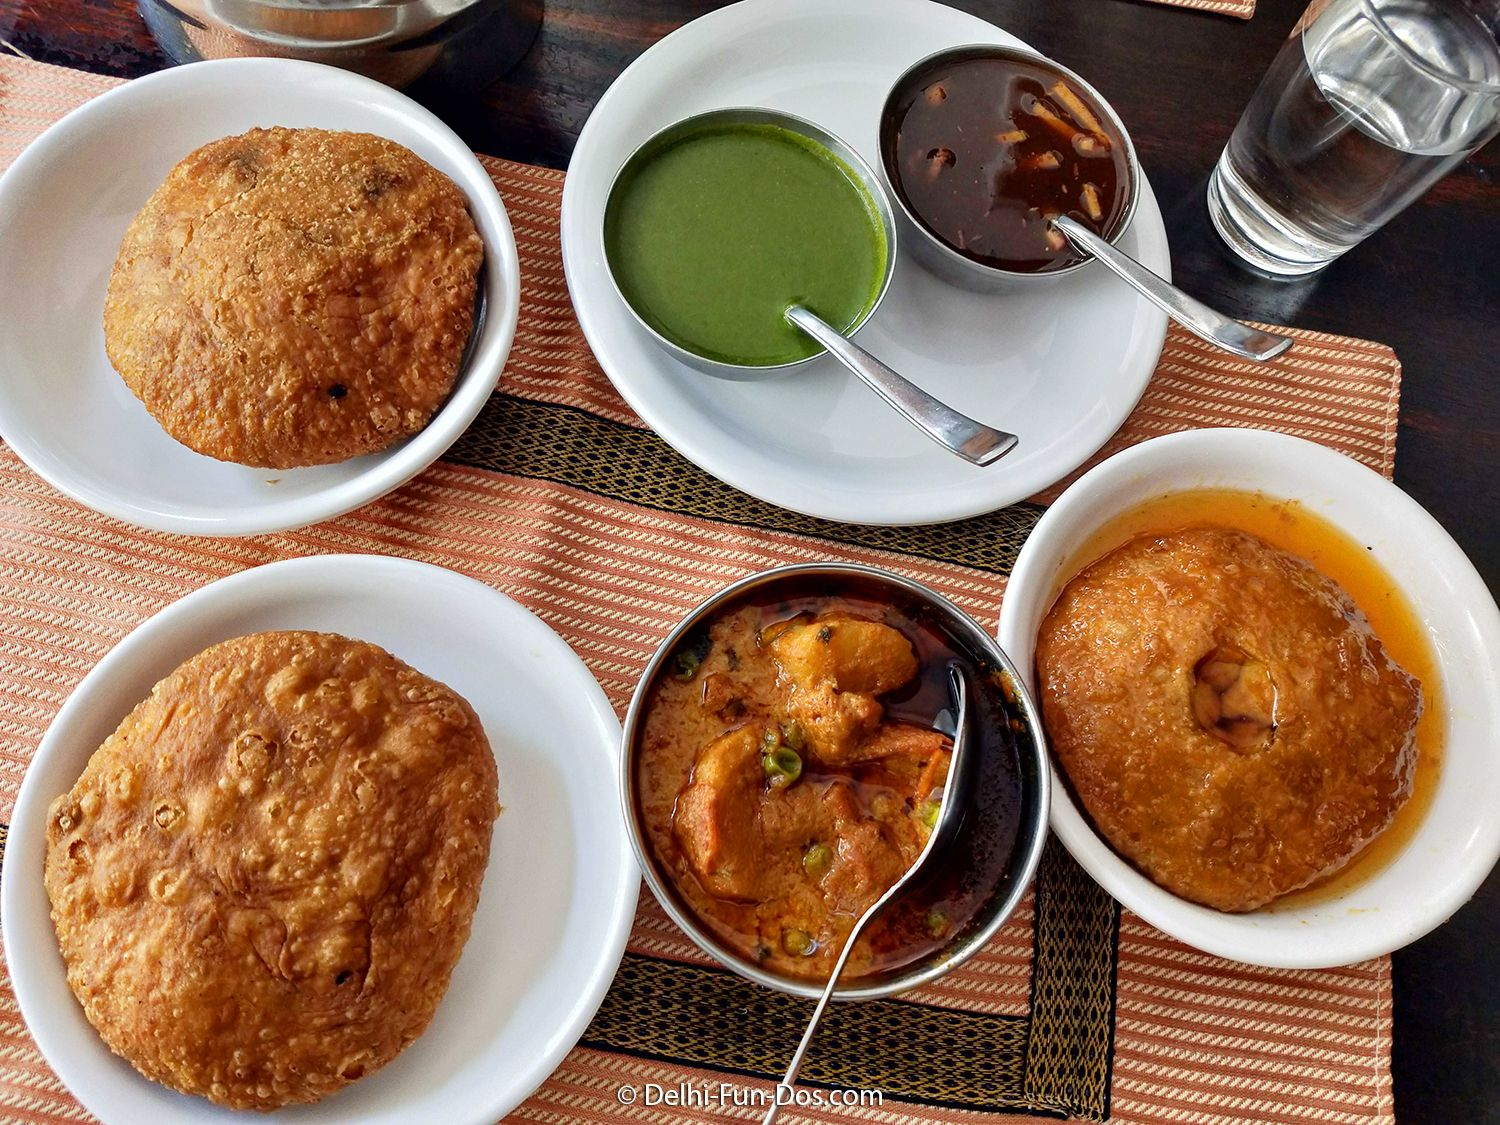 Rawat Misthan Bhandar In Jaipur Is Great Option For Palette And Pocket Delhi Fun Dos Com Rajasthani Food Food Experiences Food Lover